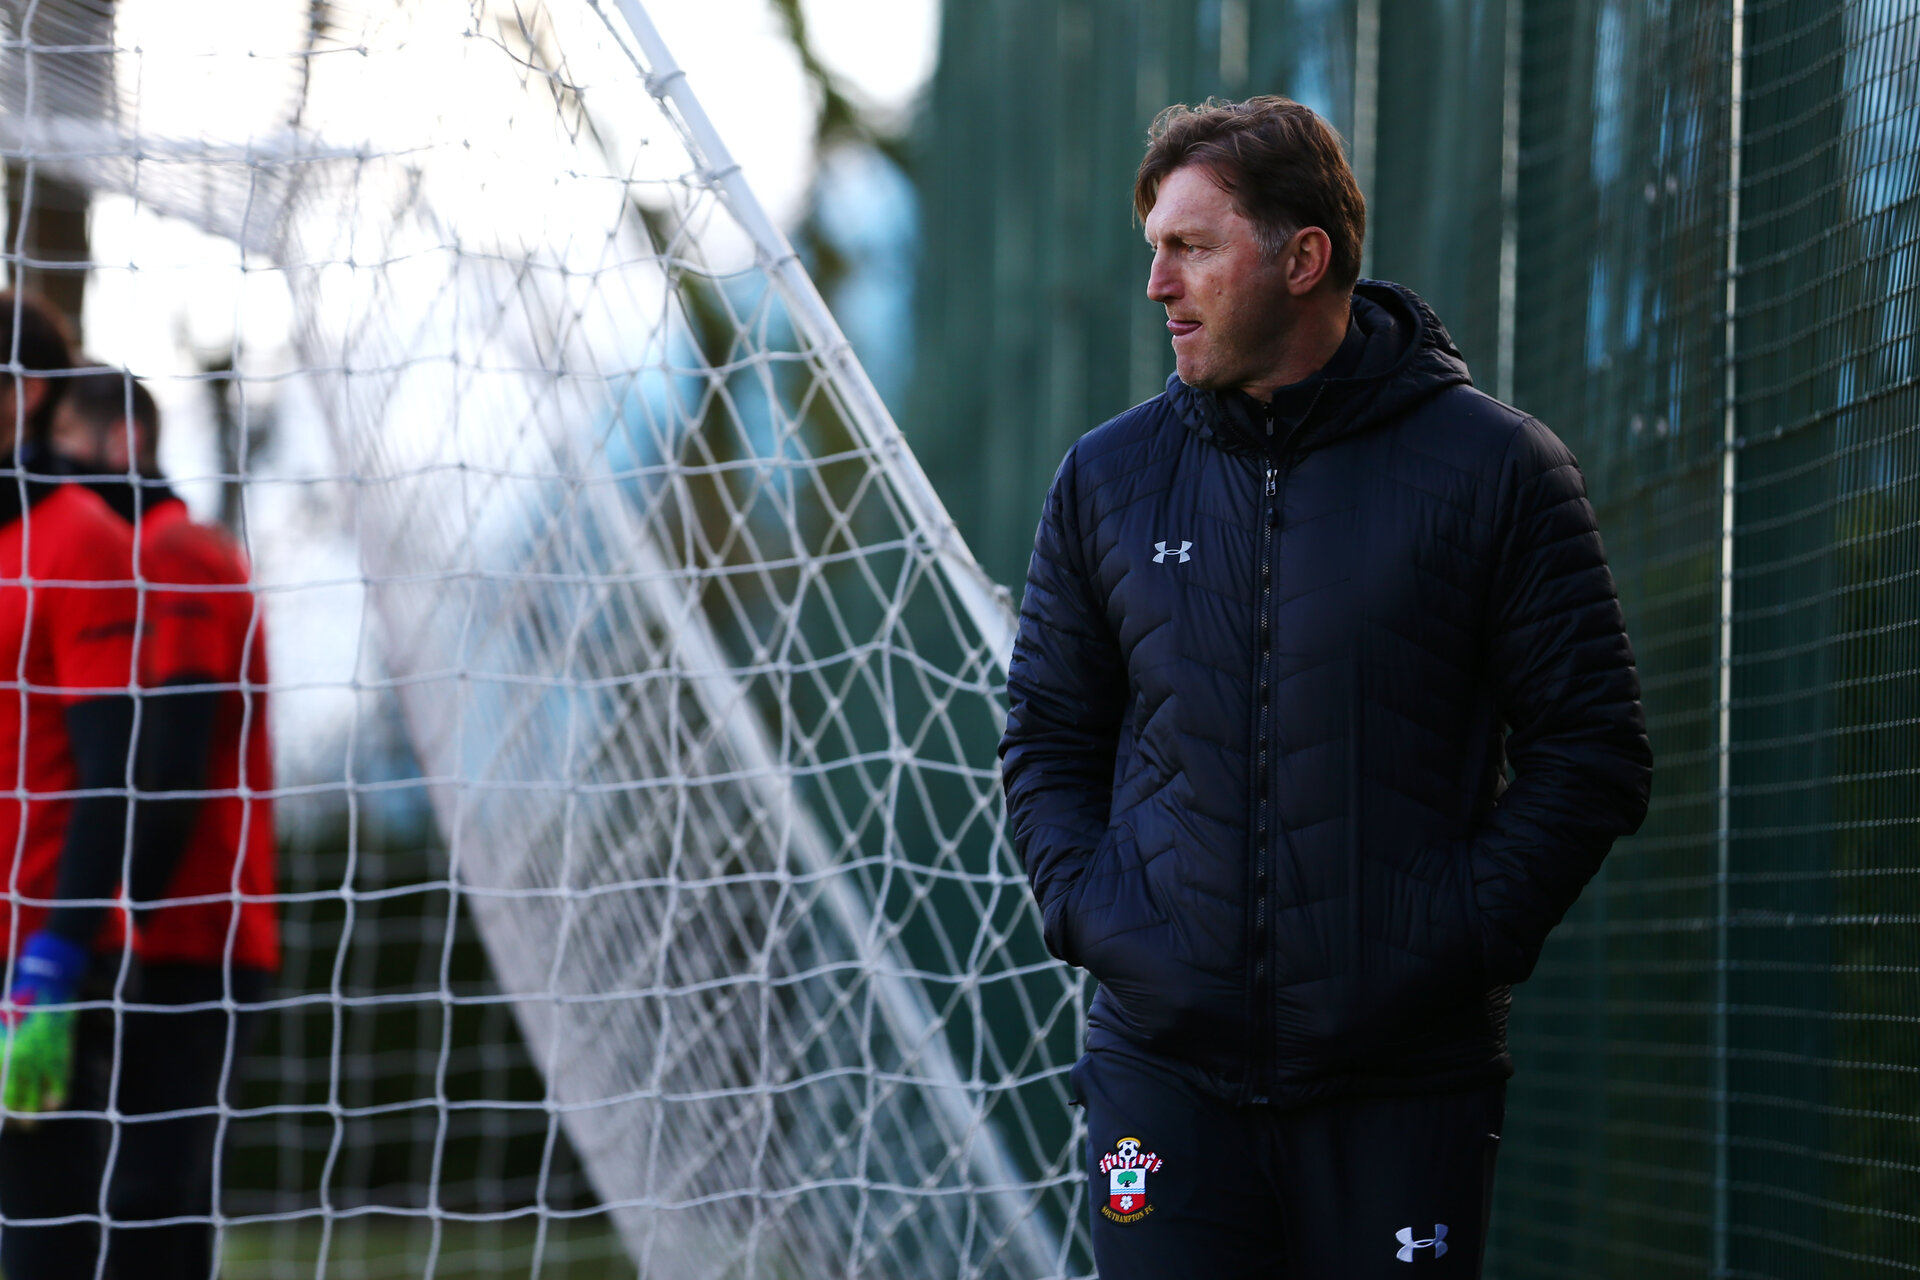 SOUTHAMPTON, ENGLAND - MARCH 07:  Ralph Hasenhuttl during a Southampton FC training session pictured at Staplewood Complex on March 07, 2019 in Southampton, England. (Photo by James Bridle - Southampton FC/Southampton FC via Getty Images)